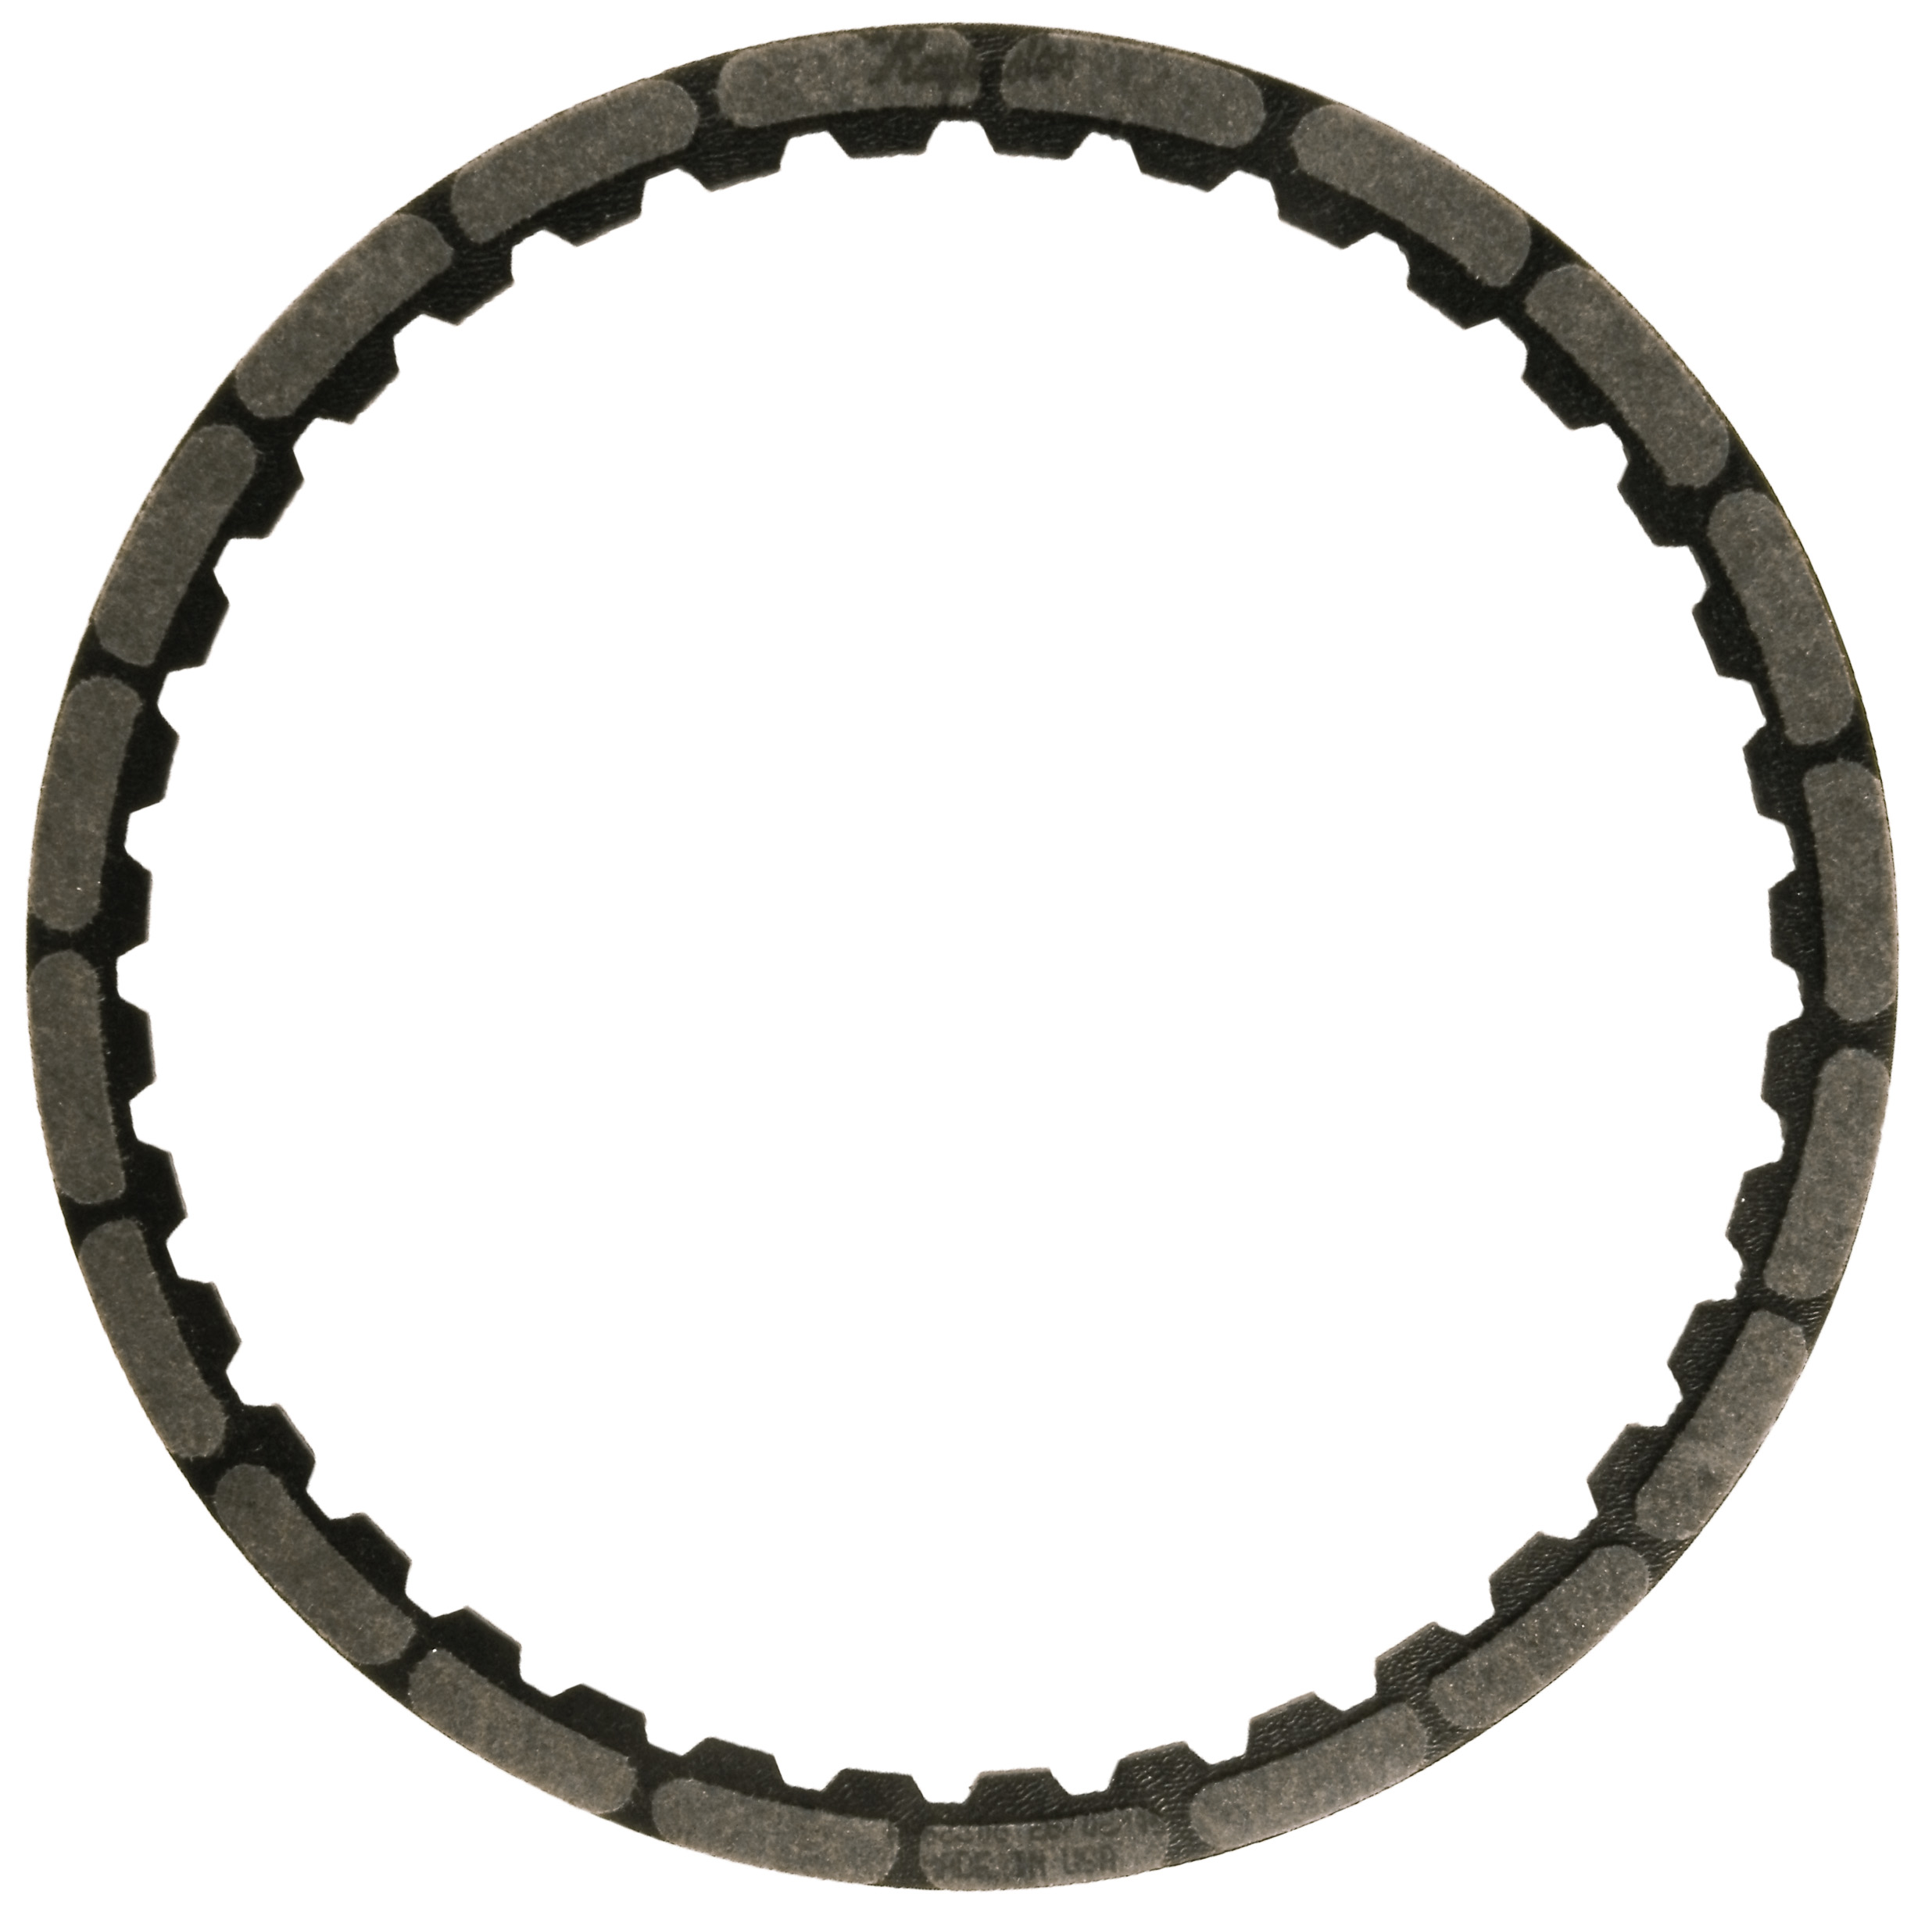 R562206 | 2007-ON Friction Clutch Plate High Energy Reverse High Energy